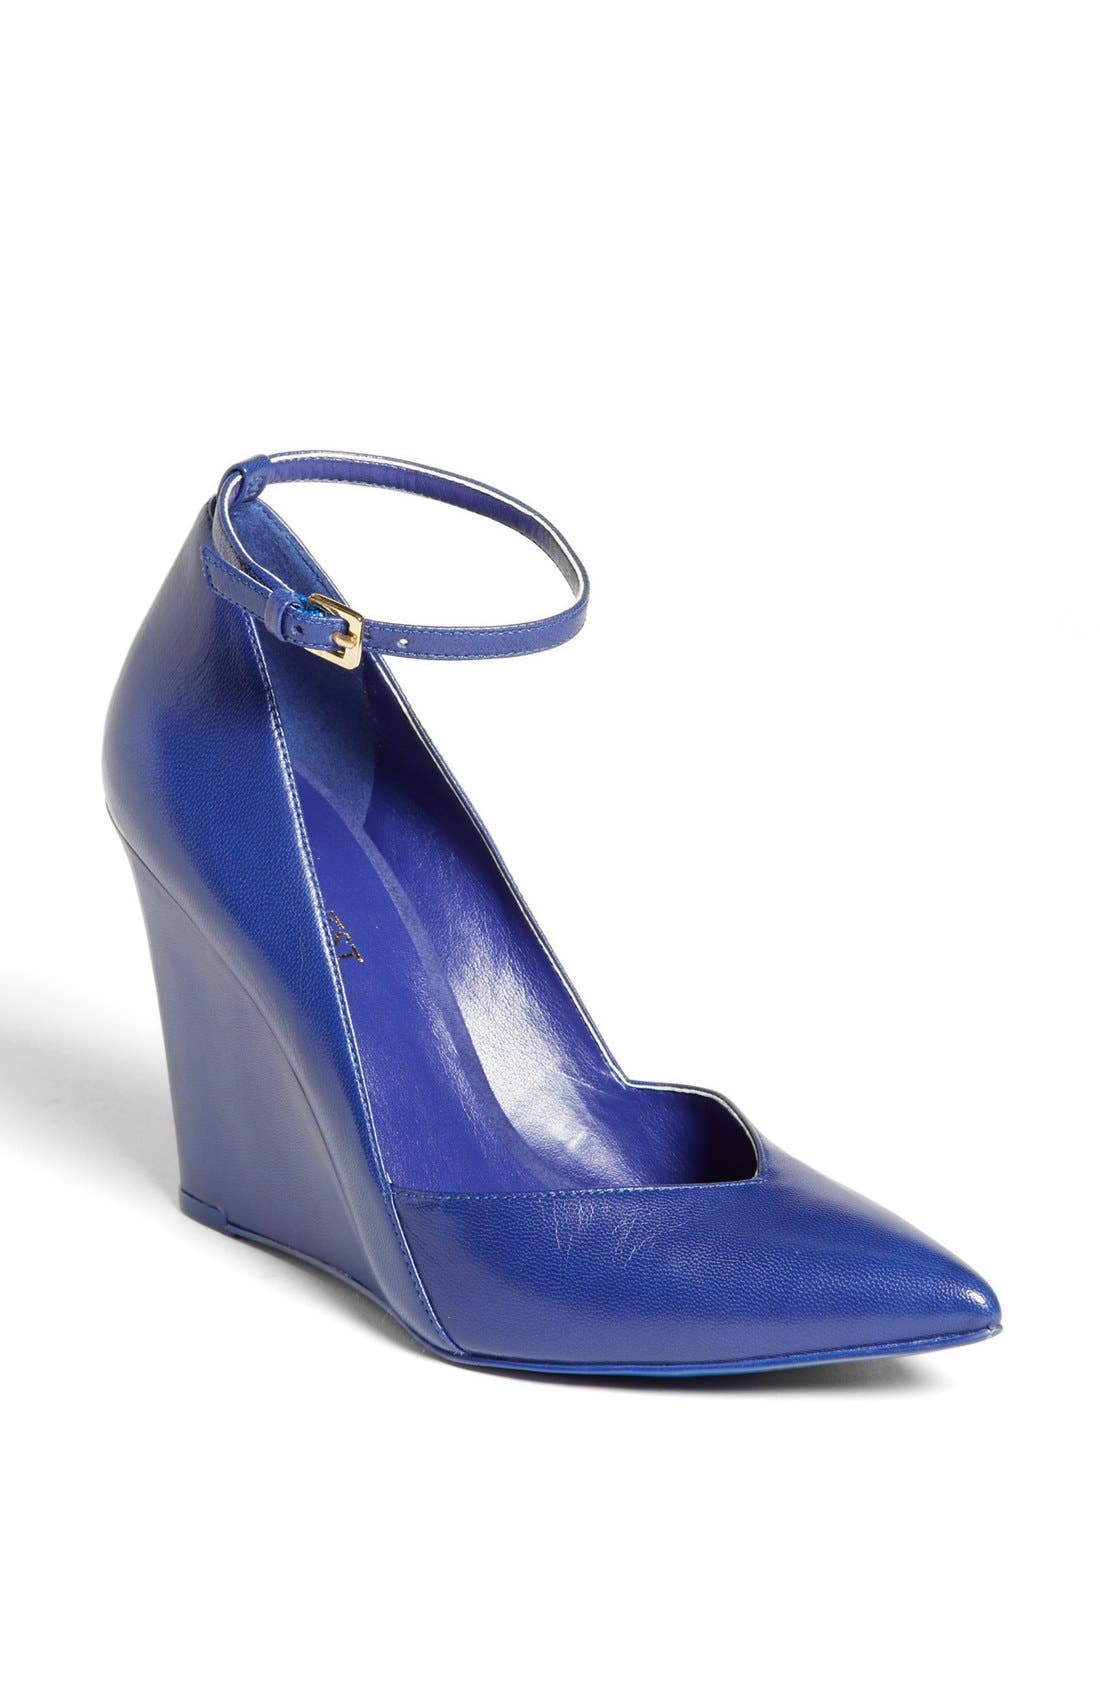 Alternate Image 1 Selected - Nine West 'Eviee' Leather Wedge Pump